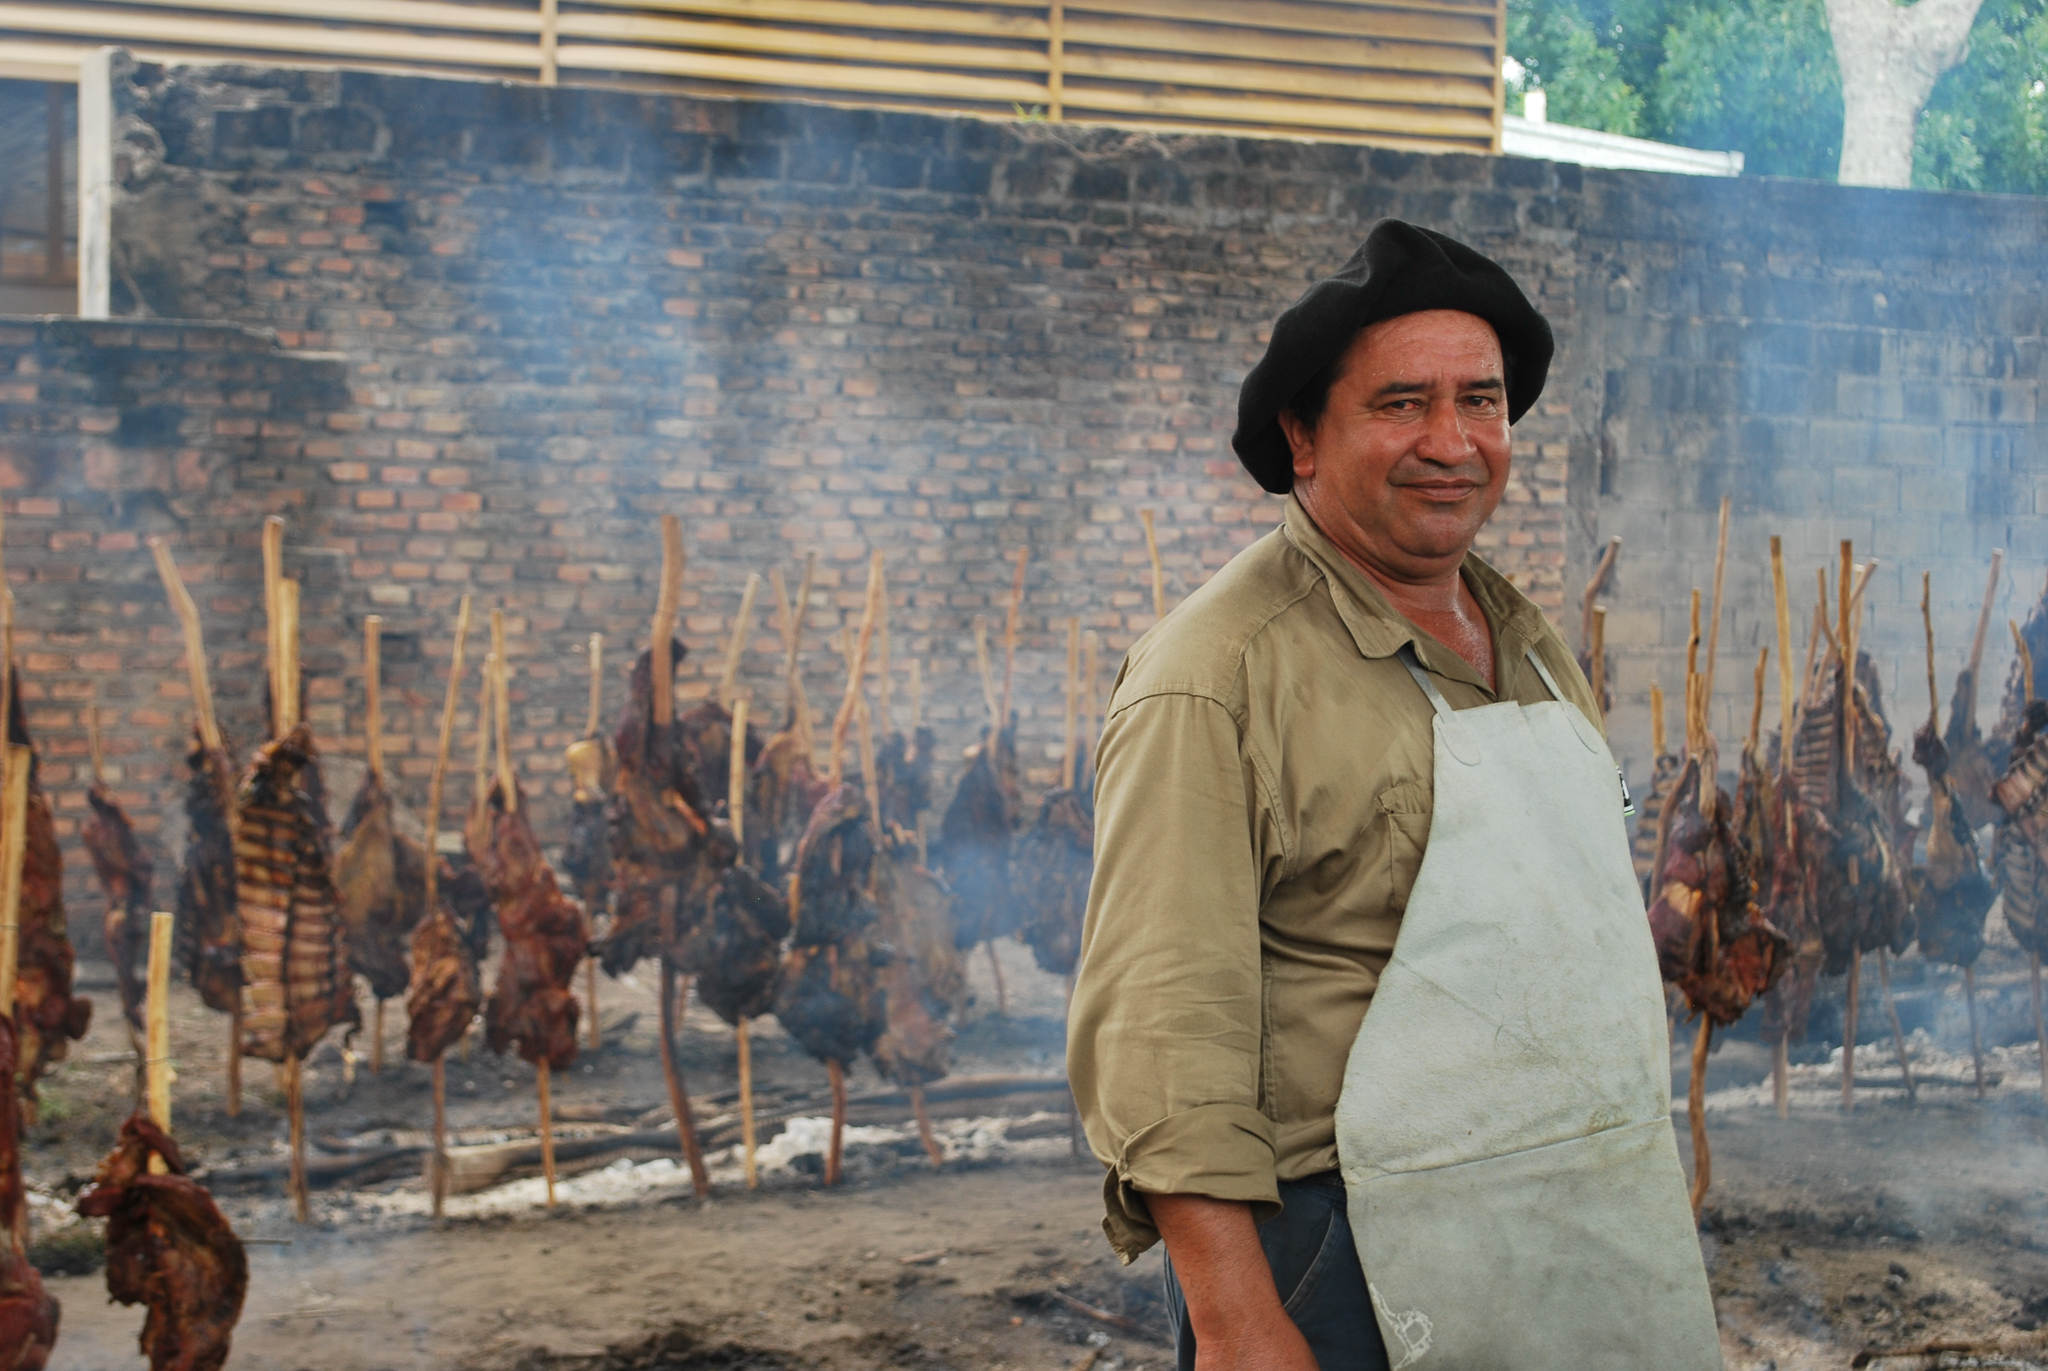 A proud barbecuer in the city of Concepción, del Yaguareté Corá, where volunteers prepared meat for a crowd of hundreds celebrating the Day of the Virgin—Photo by Brooke Jarvis